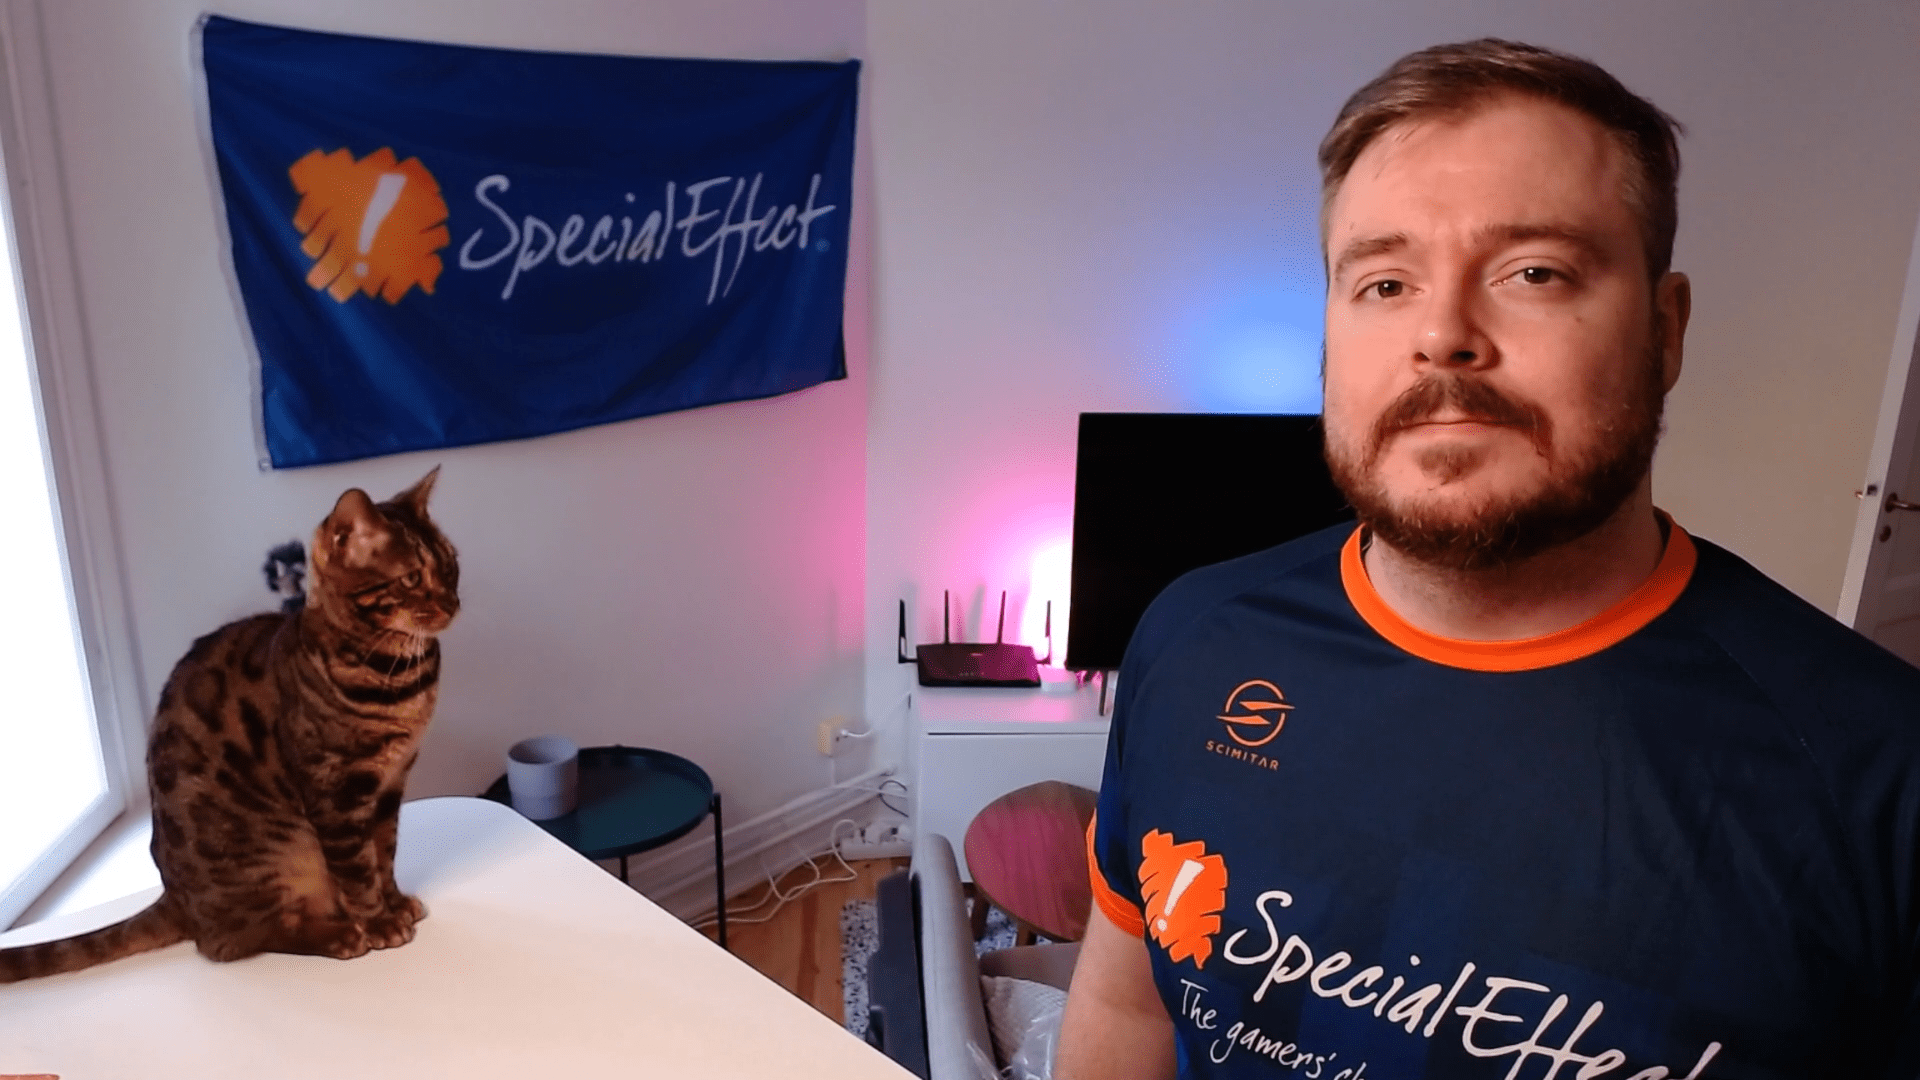 Young bearded man in a SpecialEffect tee-shirt and a tabby cat